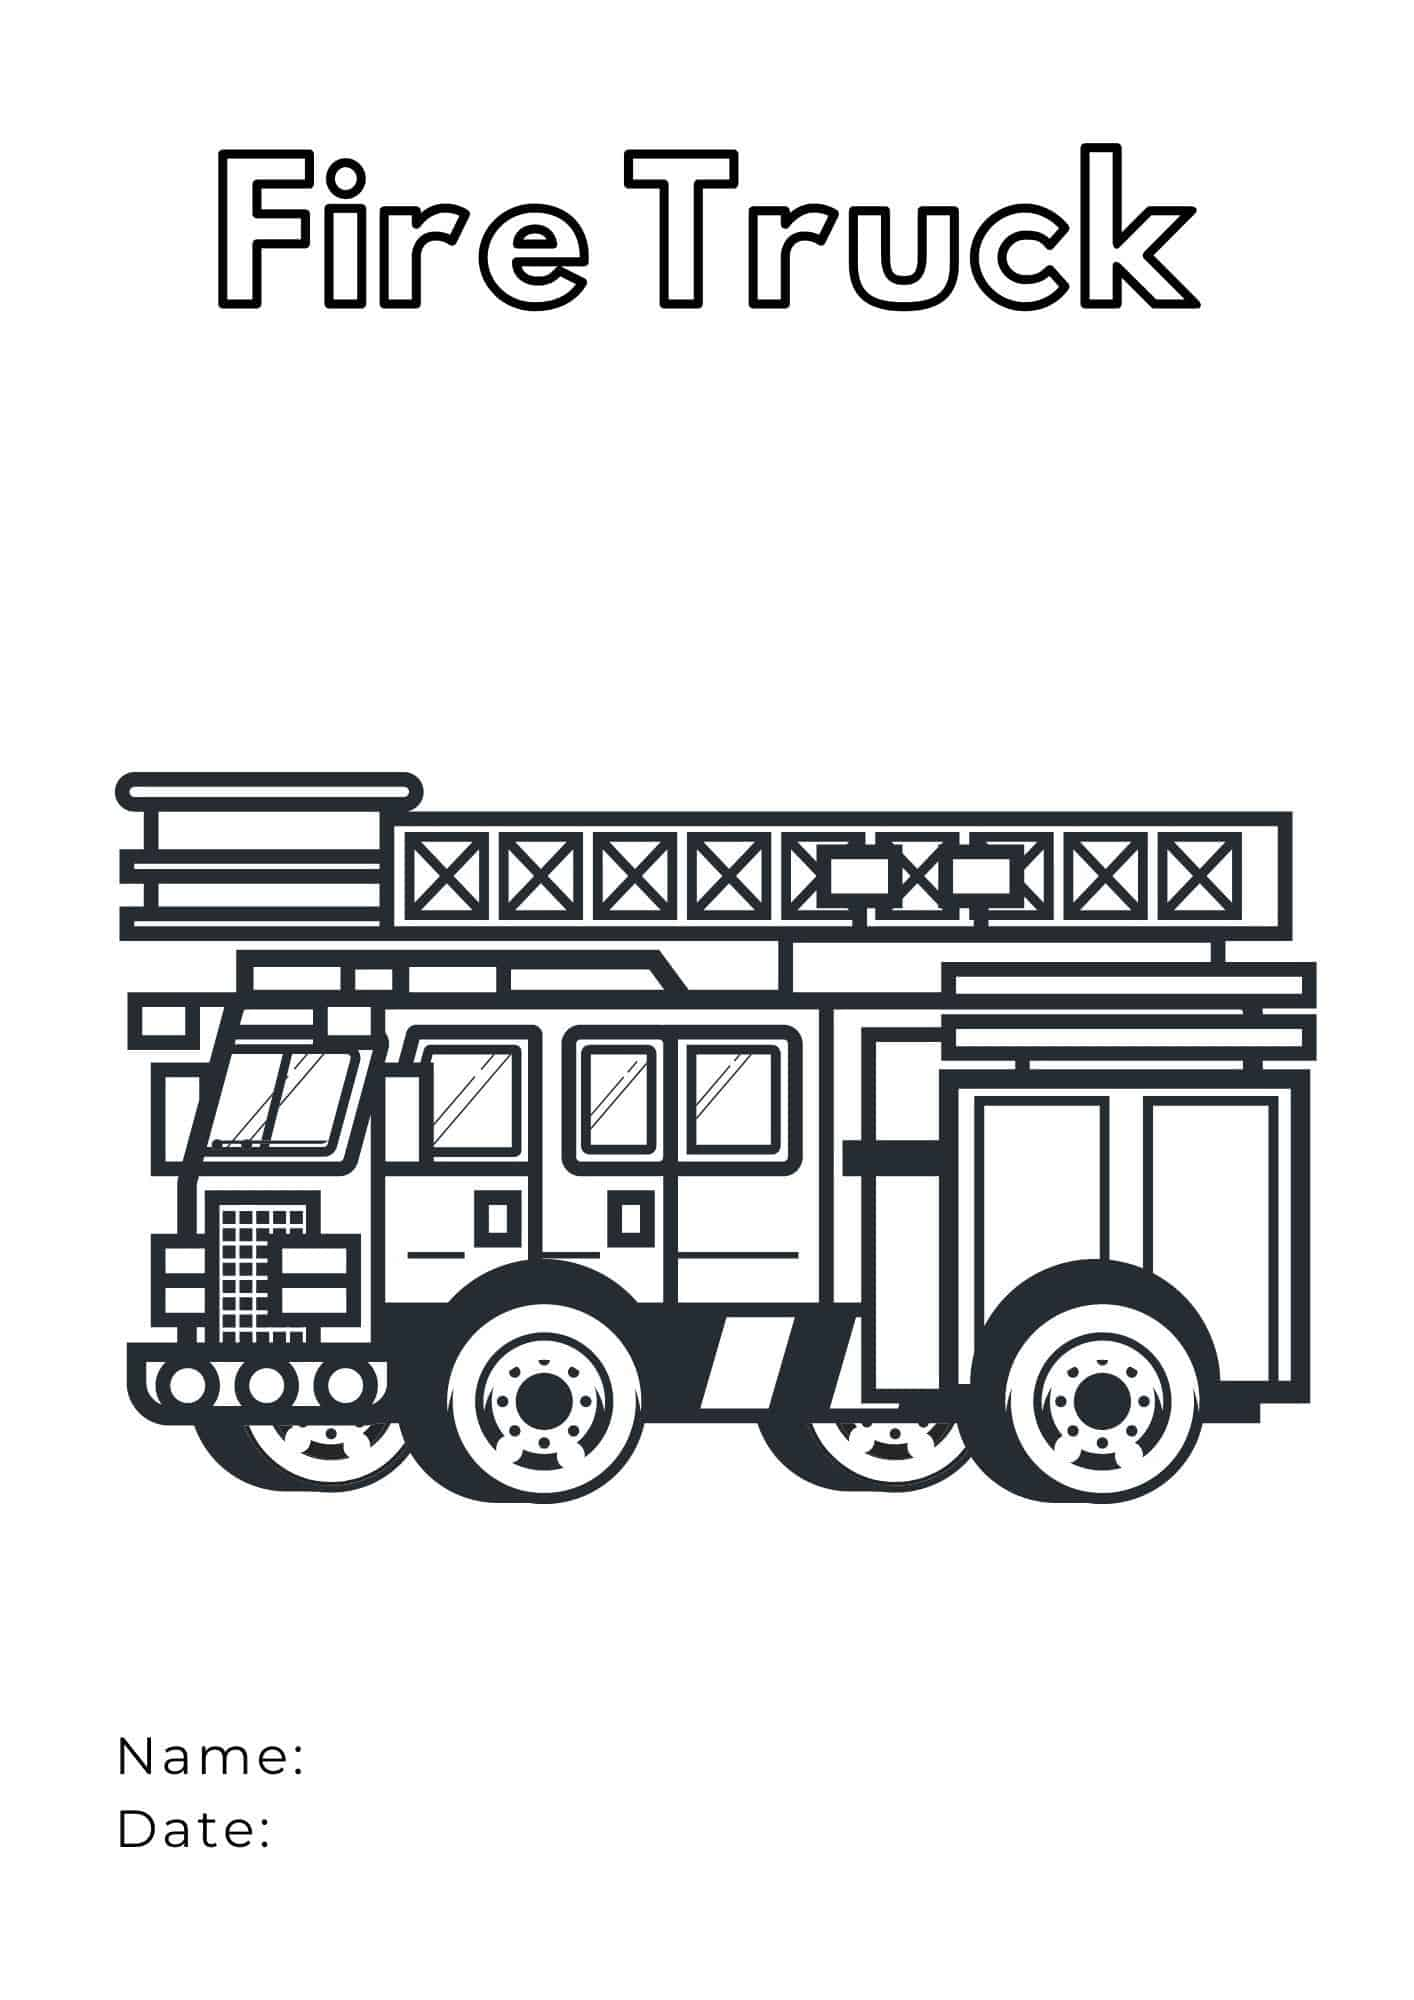 Fire Truck Coloring Page - advanced